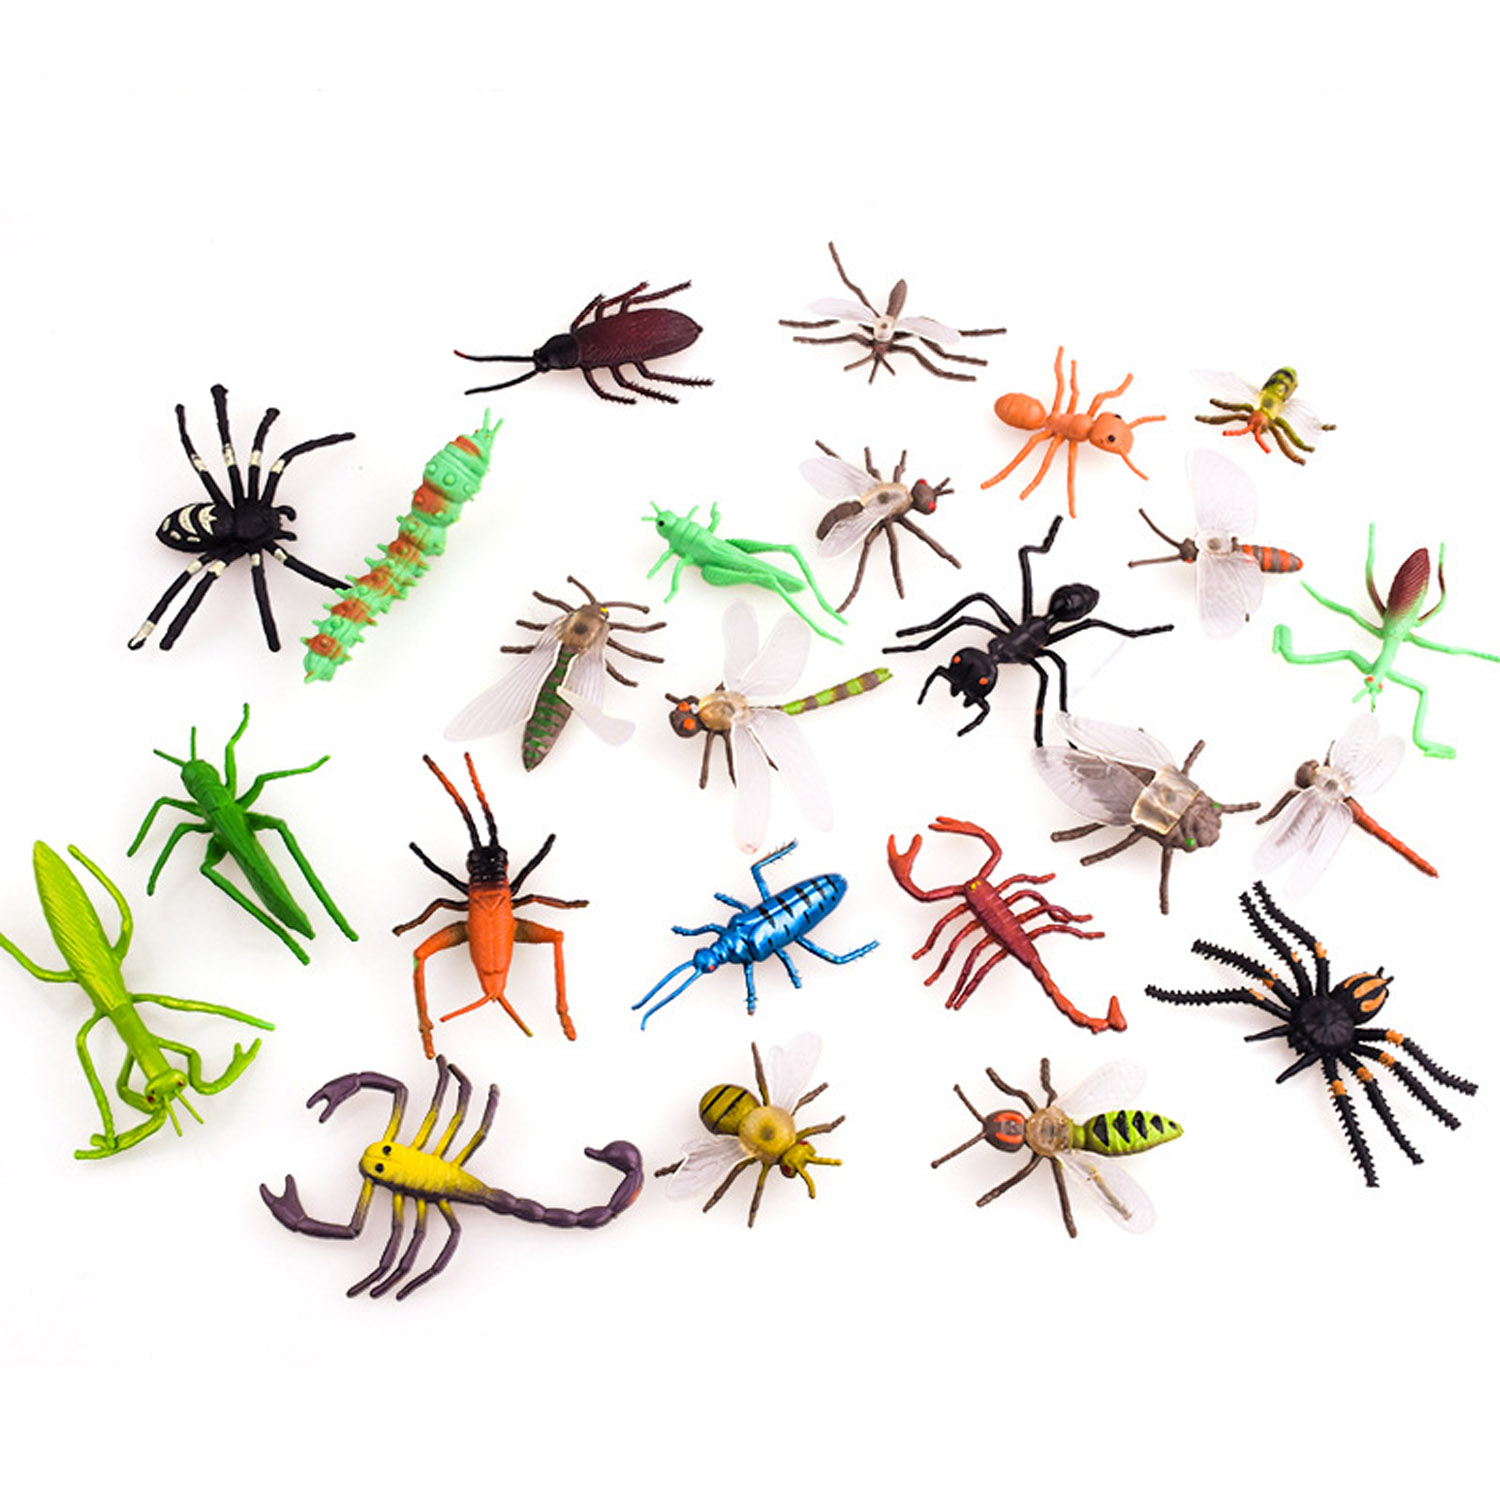 12PCS Mini Simulation PVC Insect Animals Models Resin Toys Chameleon Set For Kids Boys Girls Educational Supplies Random Style